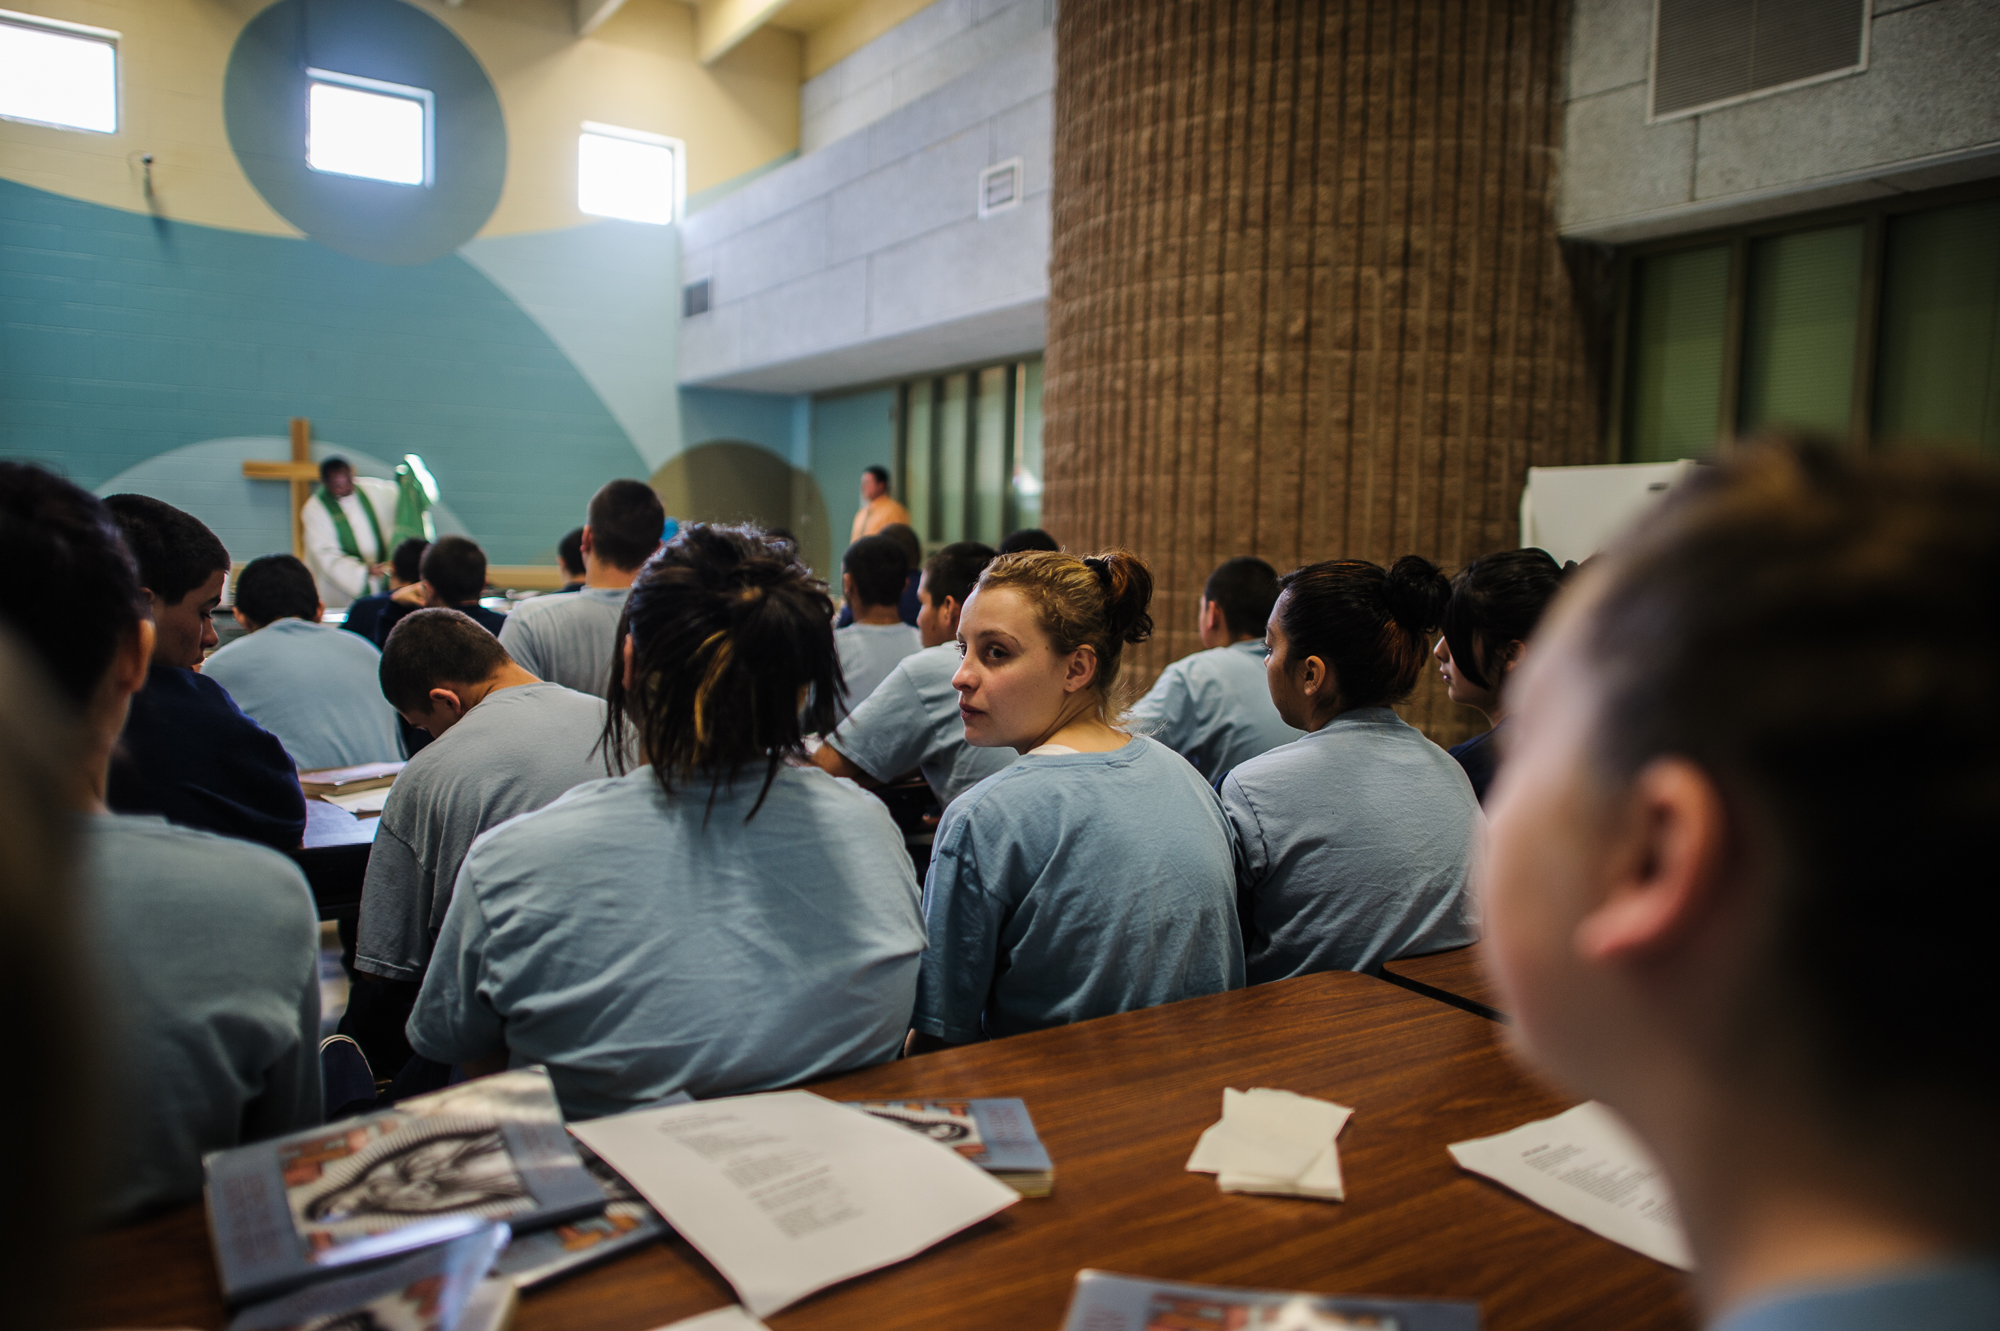 Alysia, age 16, looks back as she sits amongst youth during a Catholic Mass on Sunday at the juvenile detention center.